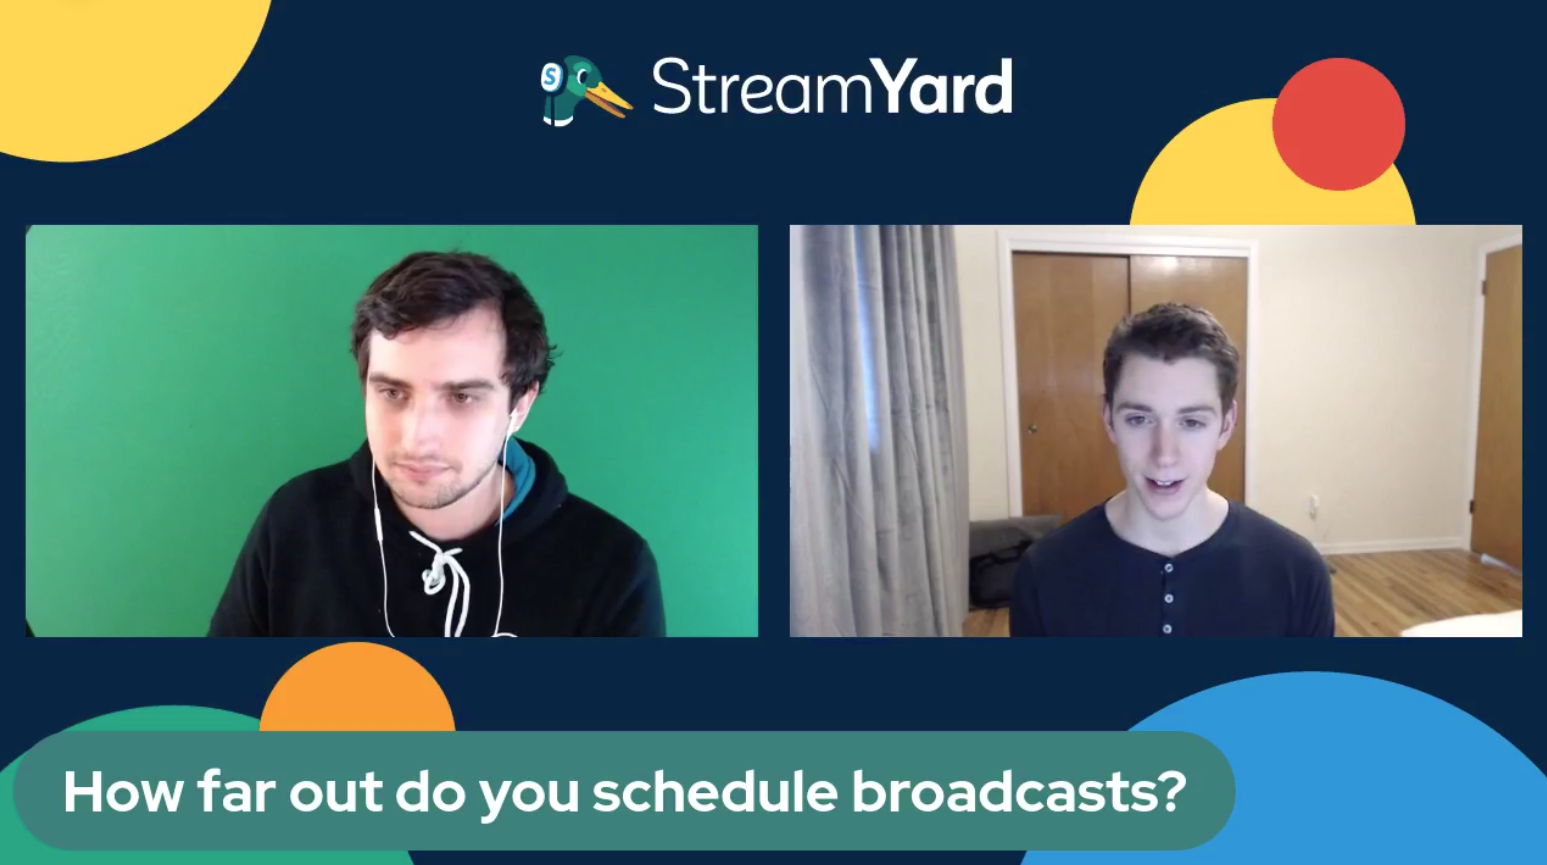 18 How far out do you schedule broadcasts - Streamyard Town Hall 116